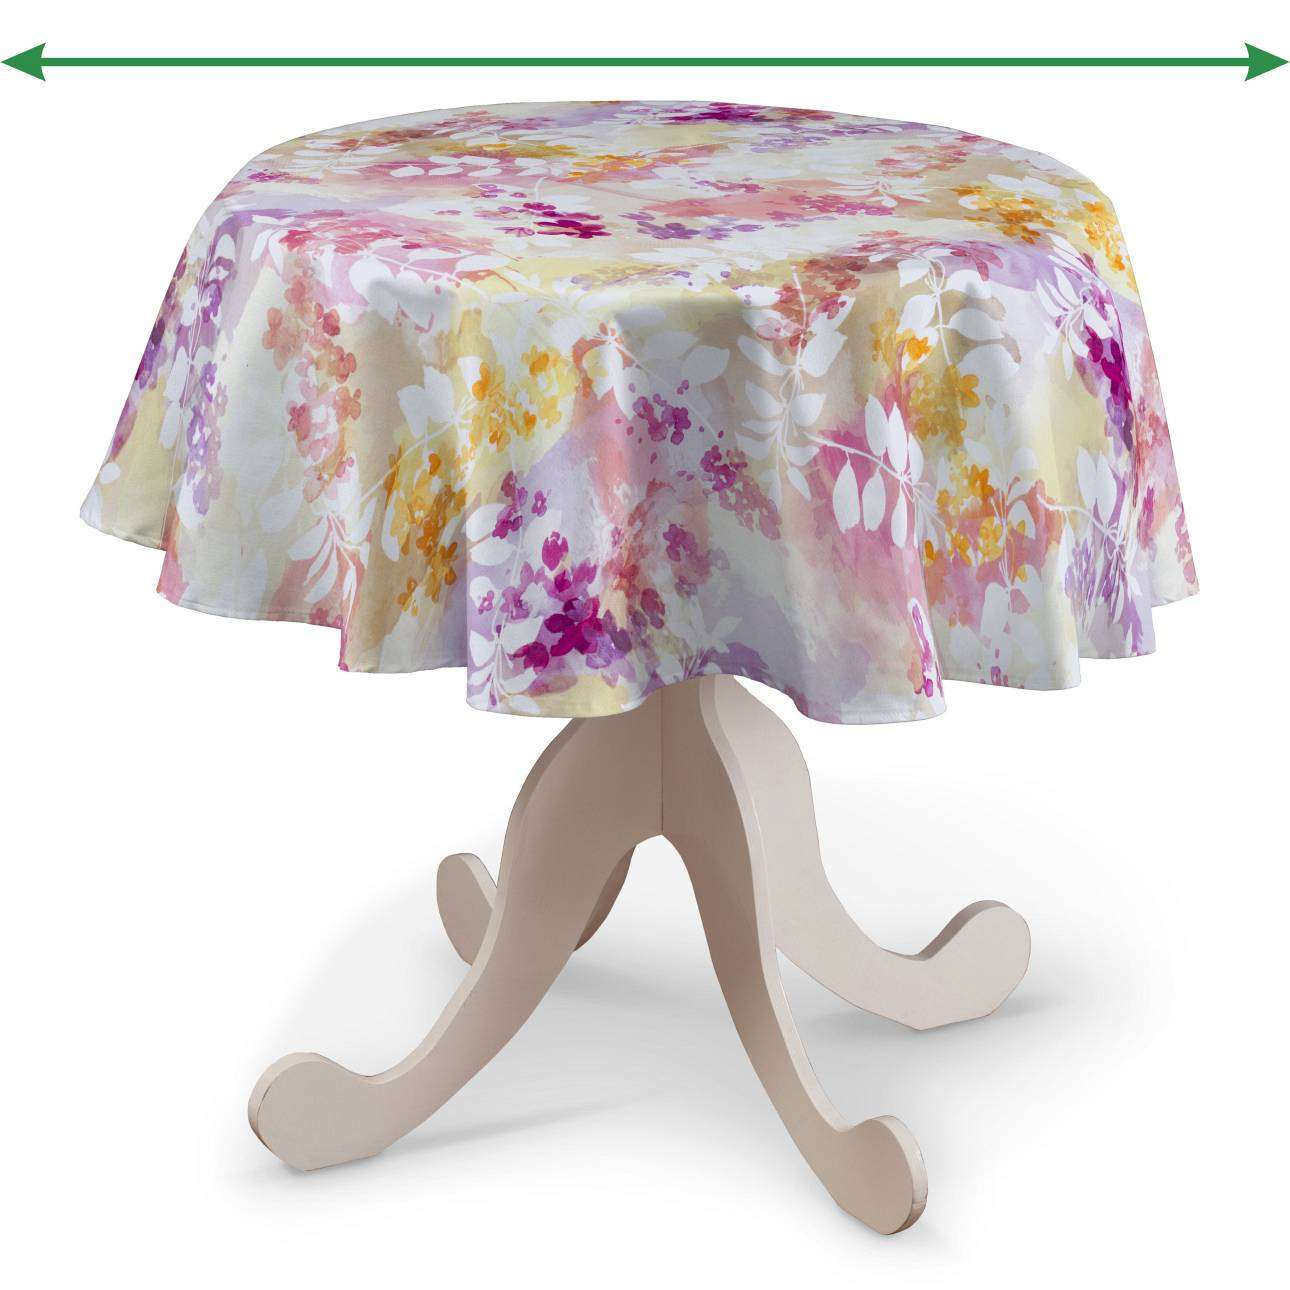 Round tablecloth in collection Monet, fabric: 140-05